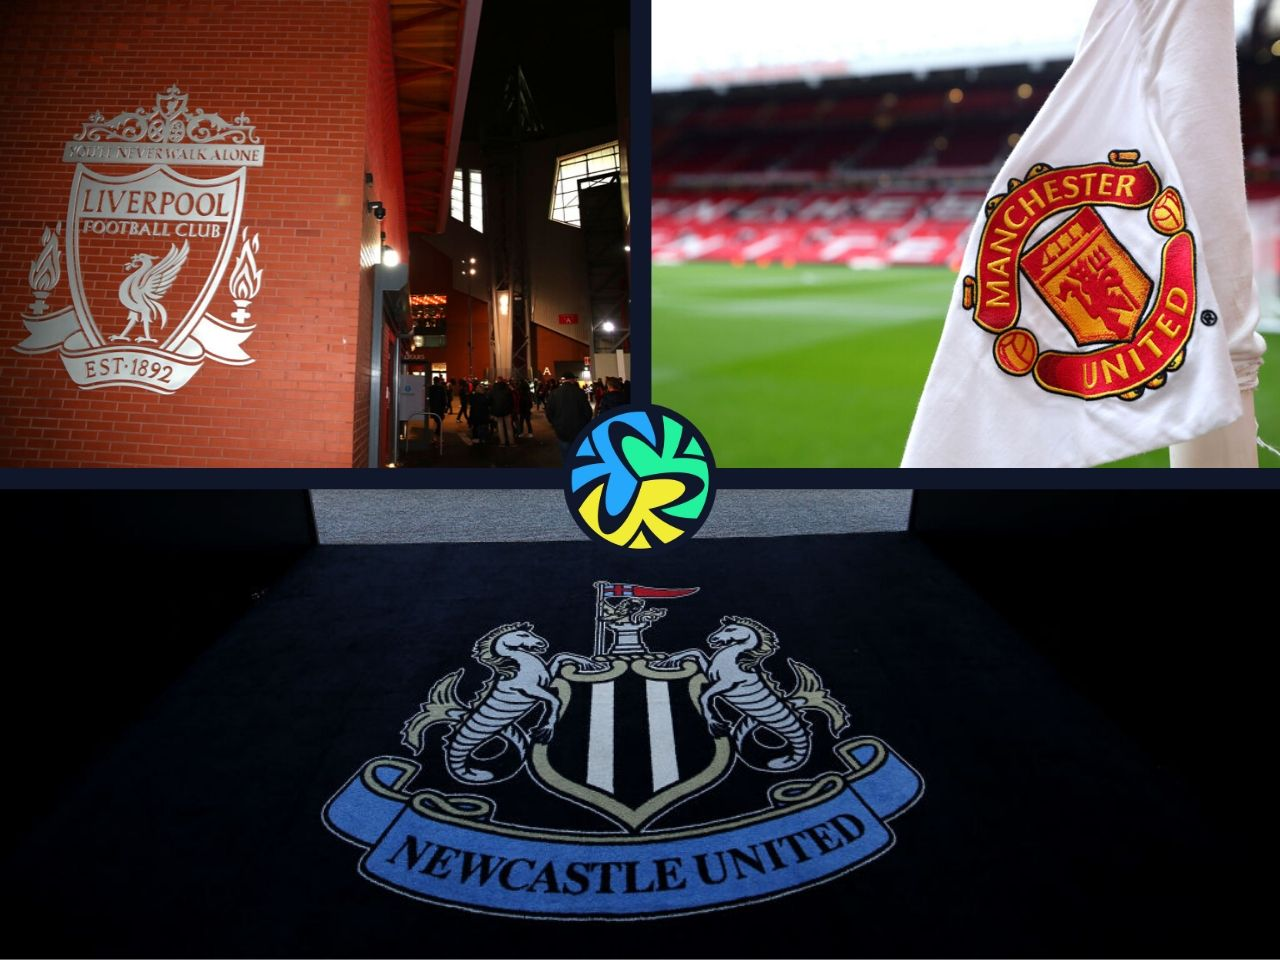 Liverpool, Newcastle United, Manchester United